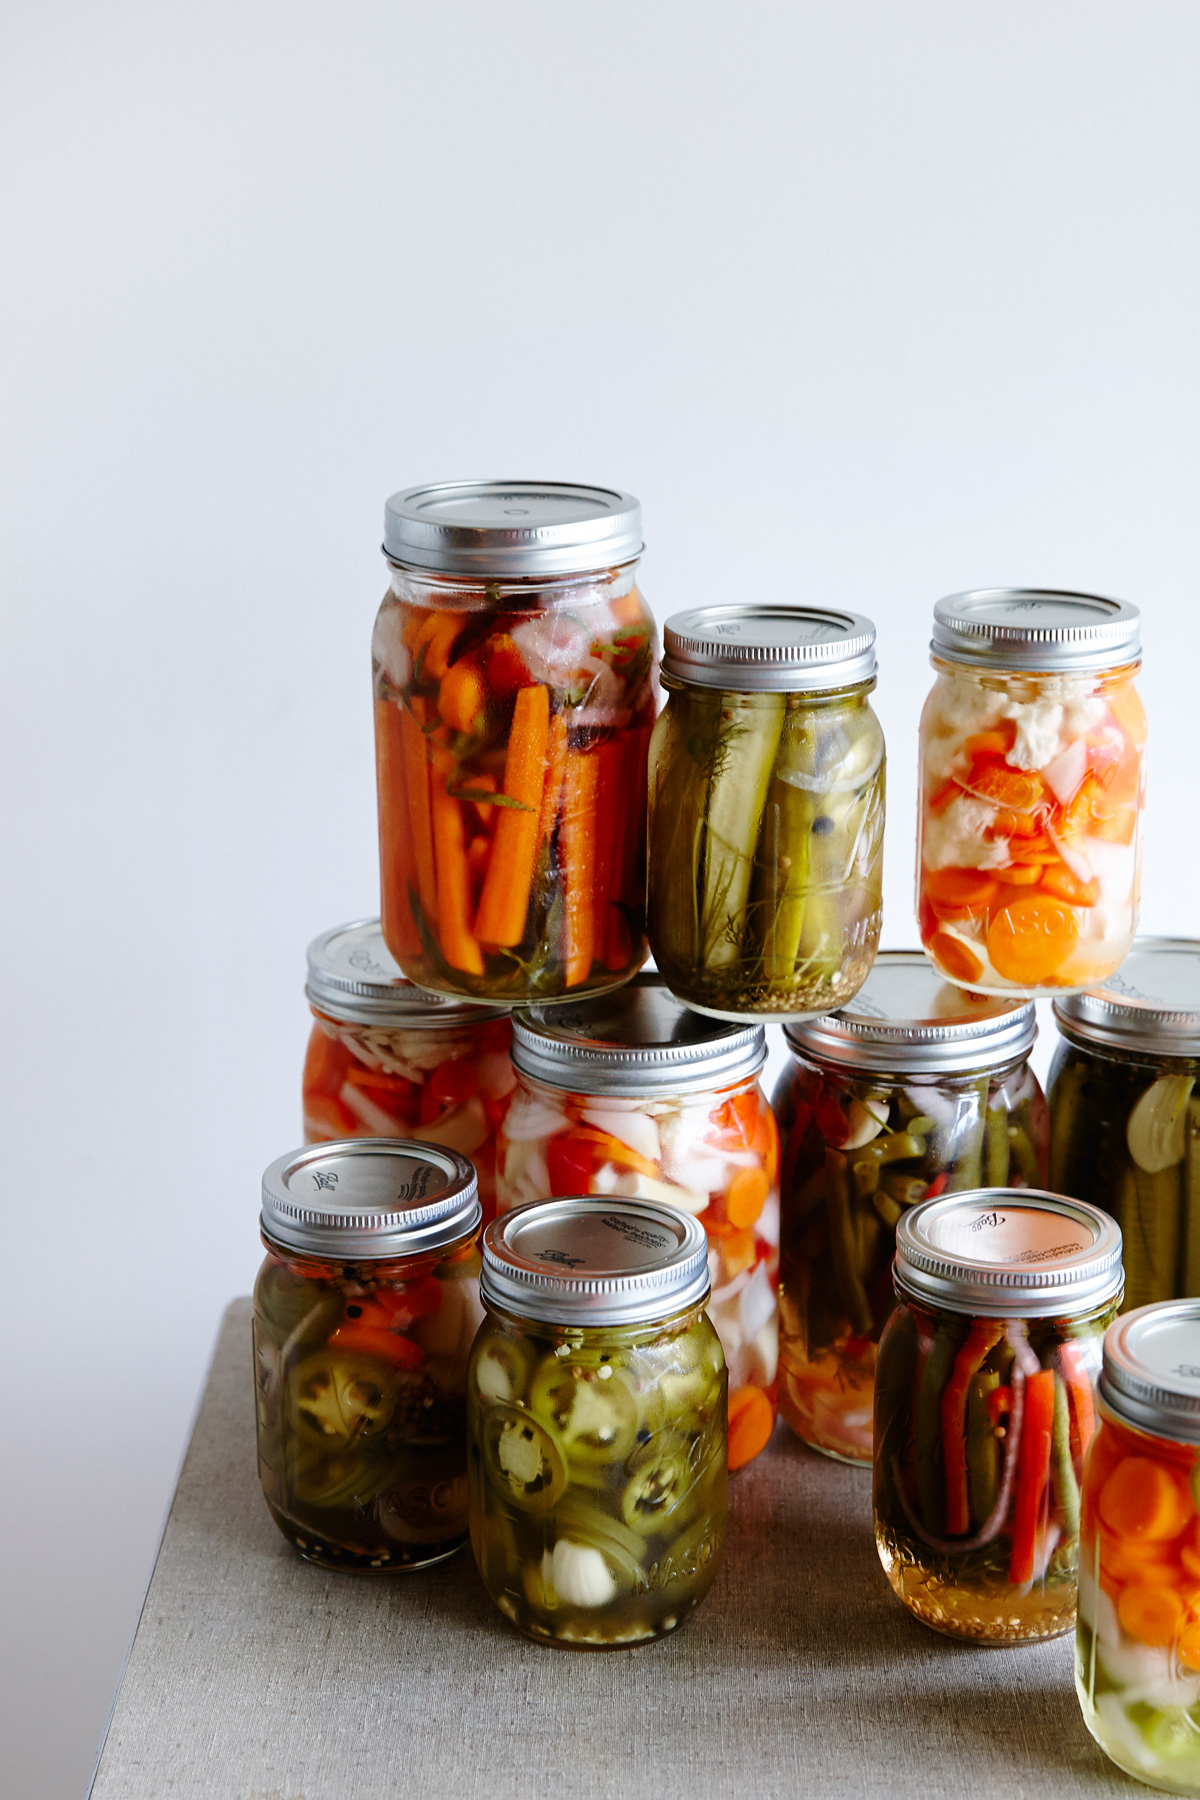 140720-pickled-veggies-9-1